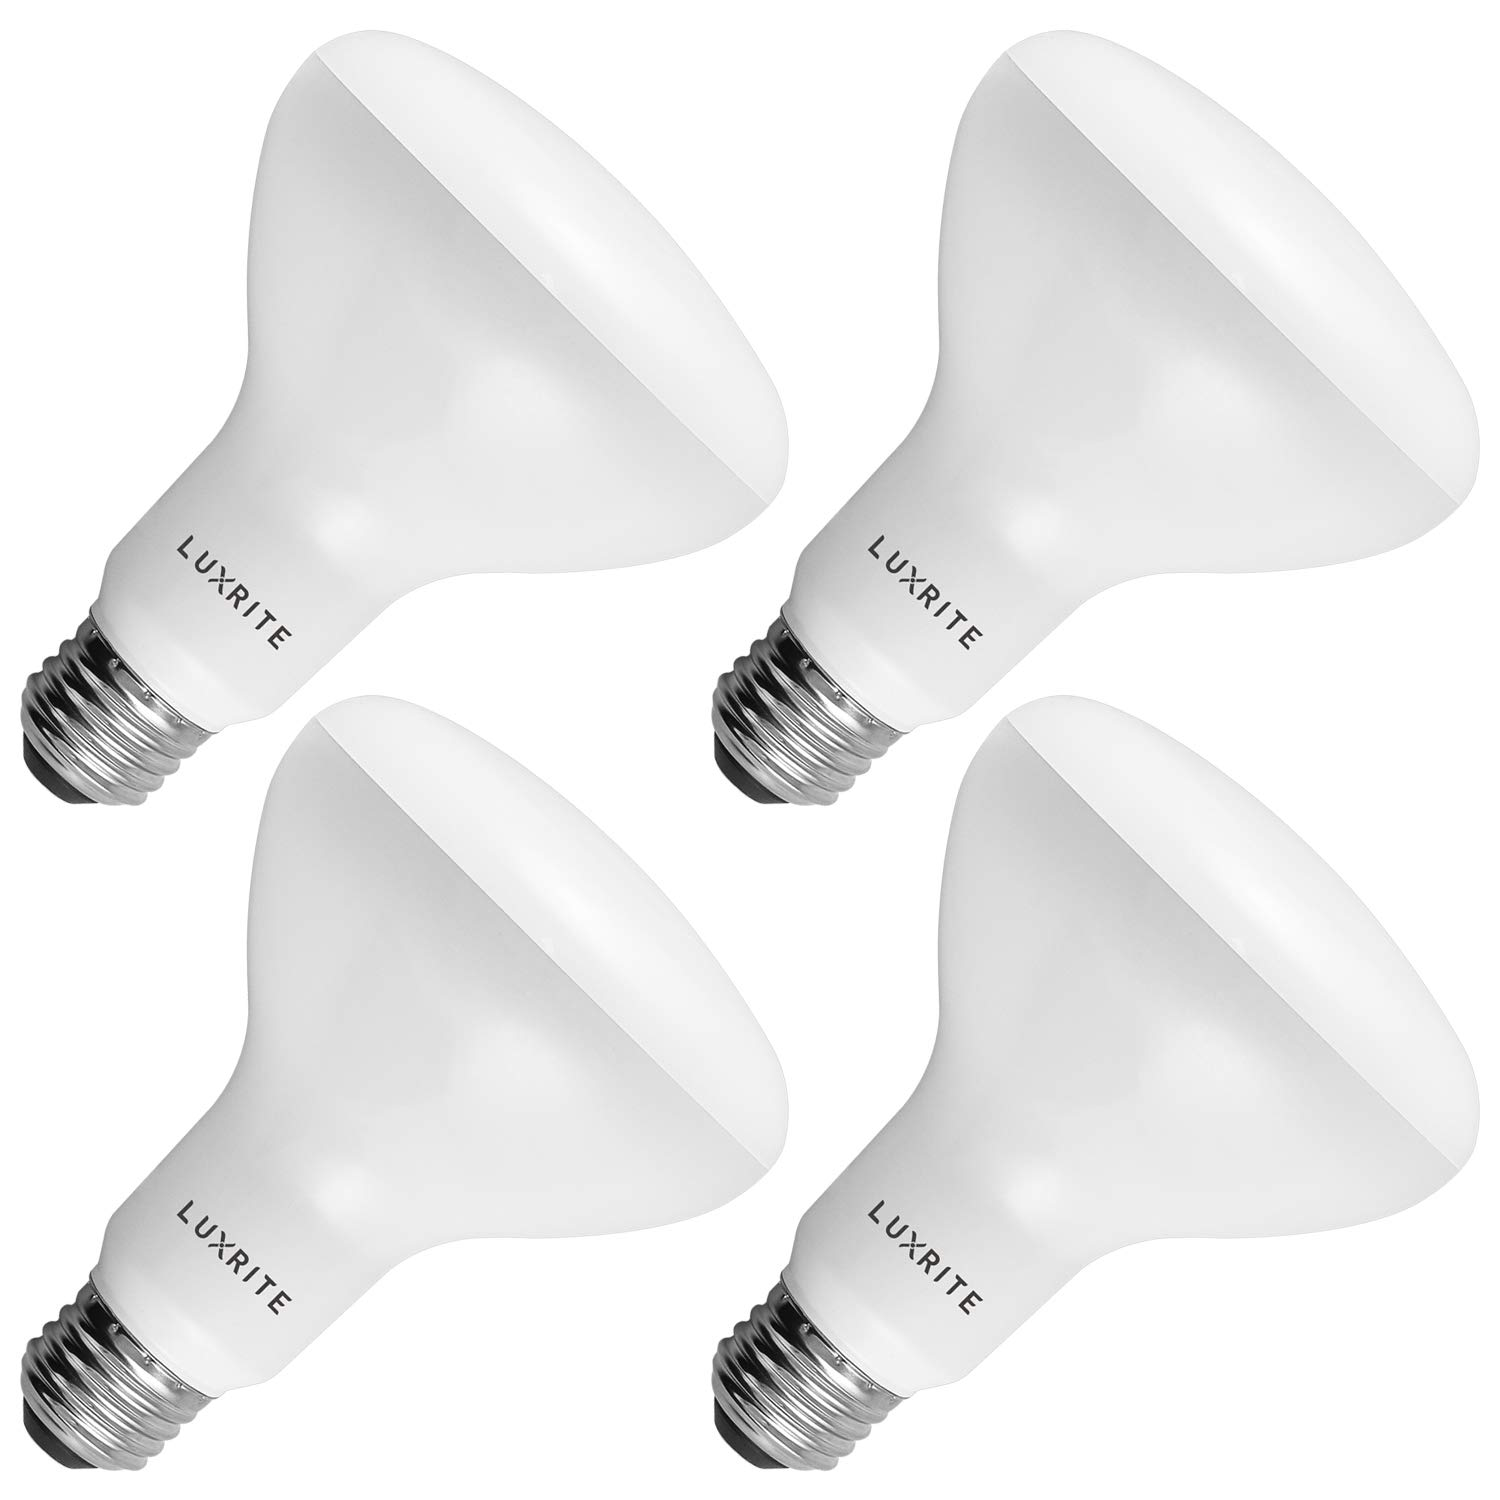 4-Pack BR30 LED Bulb, Luxrite, 65W Equivalent, 3500K Natural White, Dimmable, 650 Lumens, LED Flood Light Bulbs, 9W, E26 Medium Base, Damp Rated, Indoor/Outdoor - Living Room, Kitchen, and Recessed